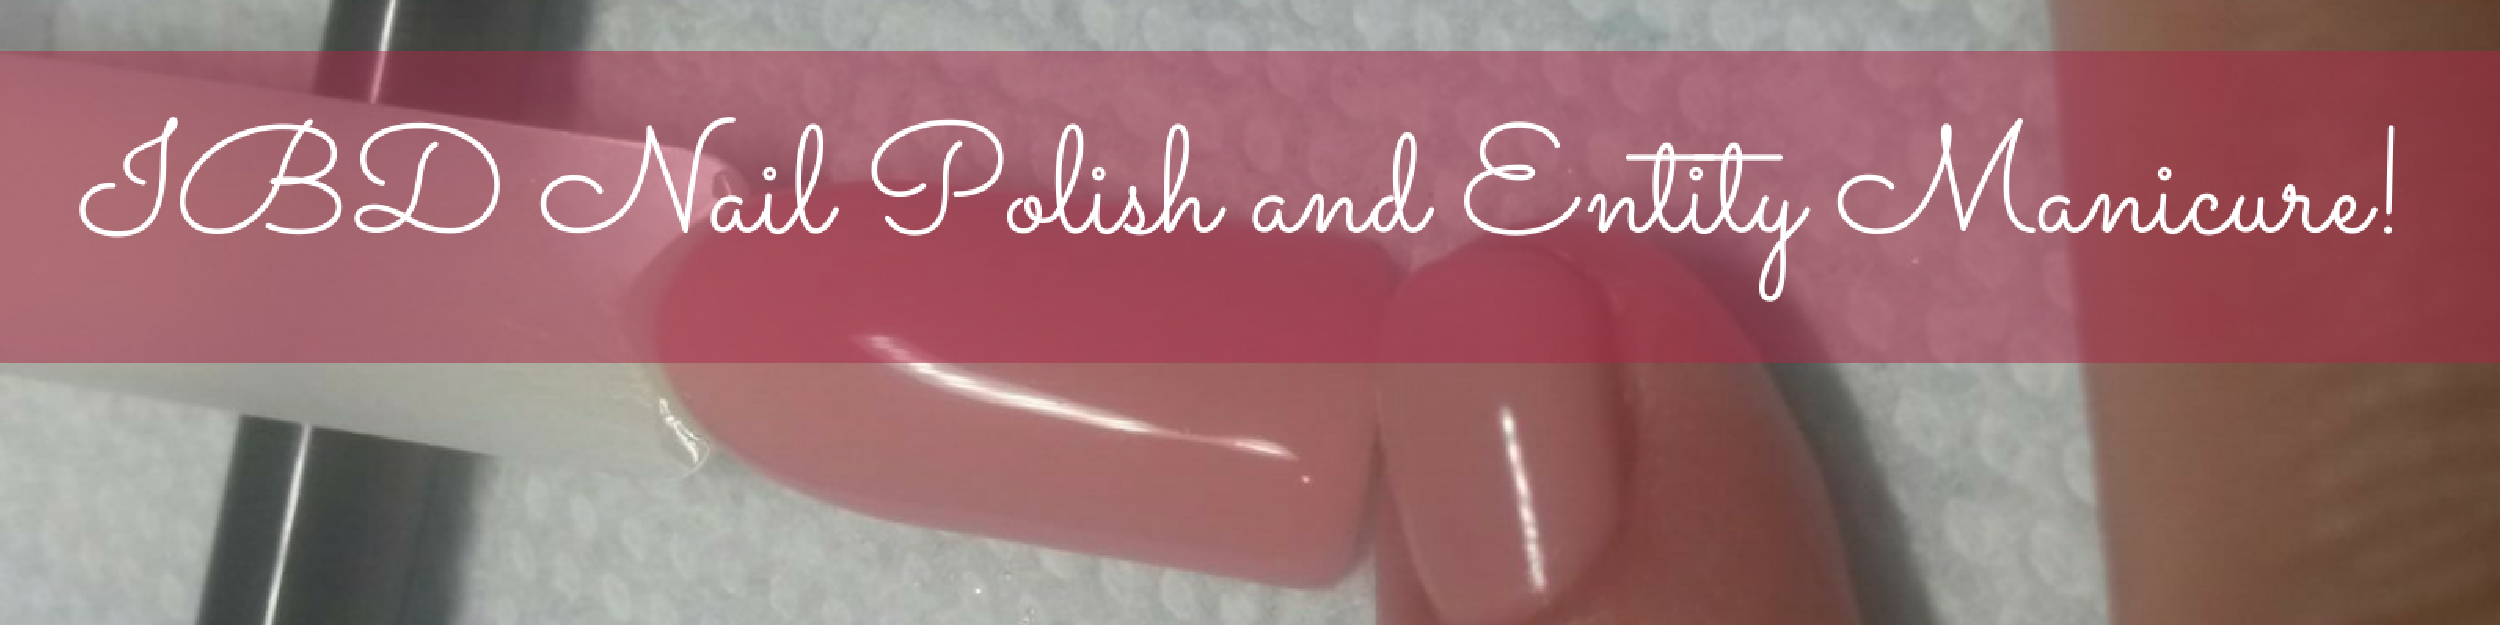 ibd-nail-polish-and-entity-manicure